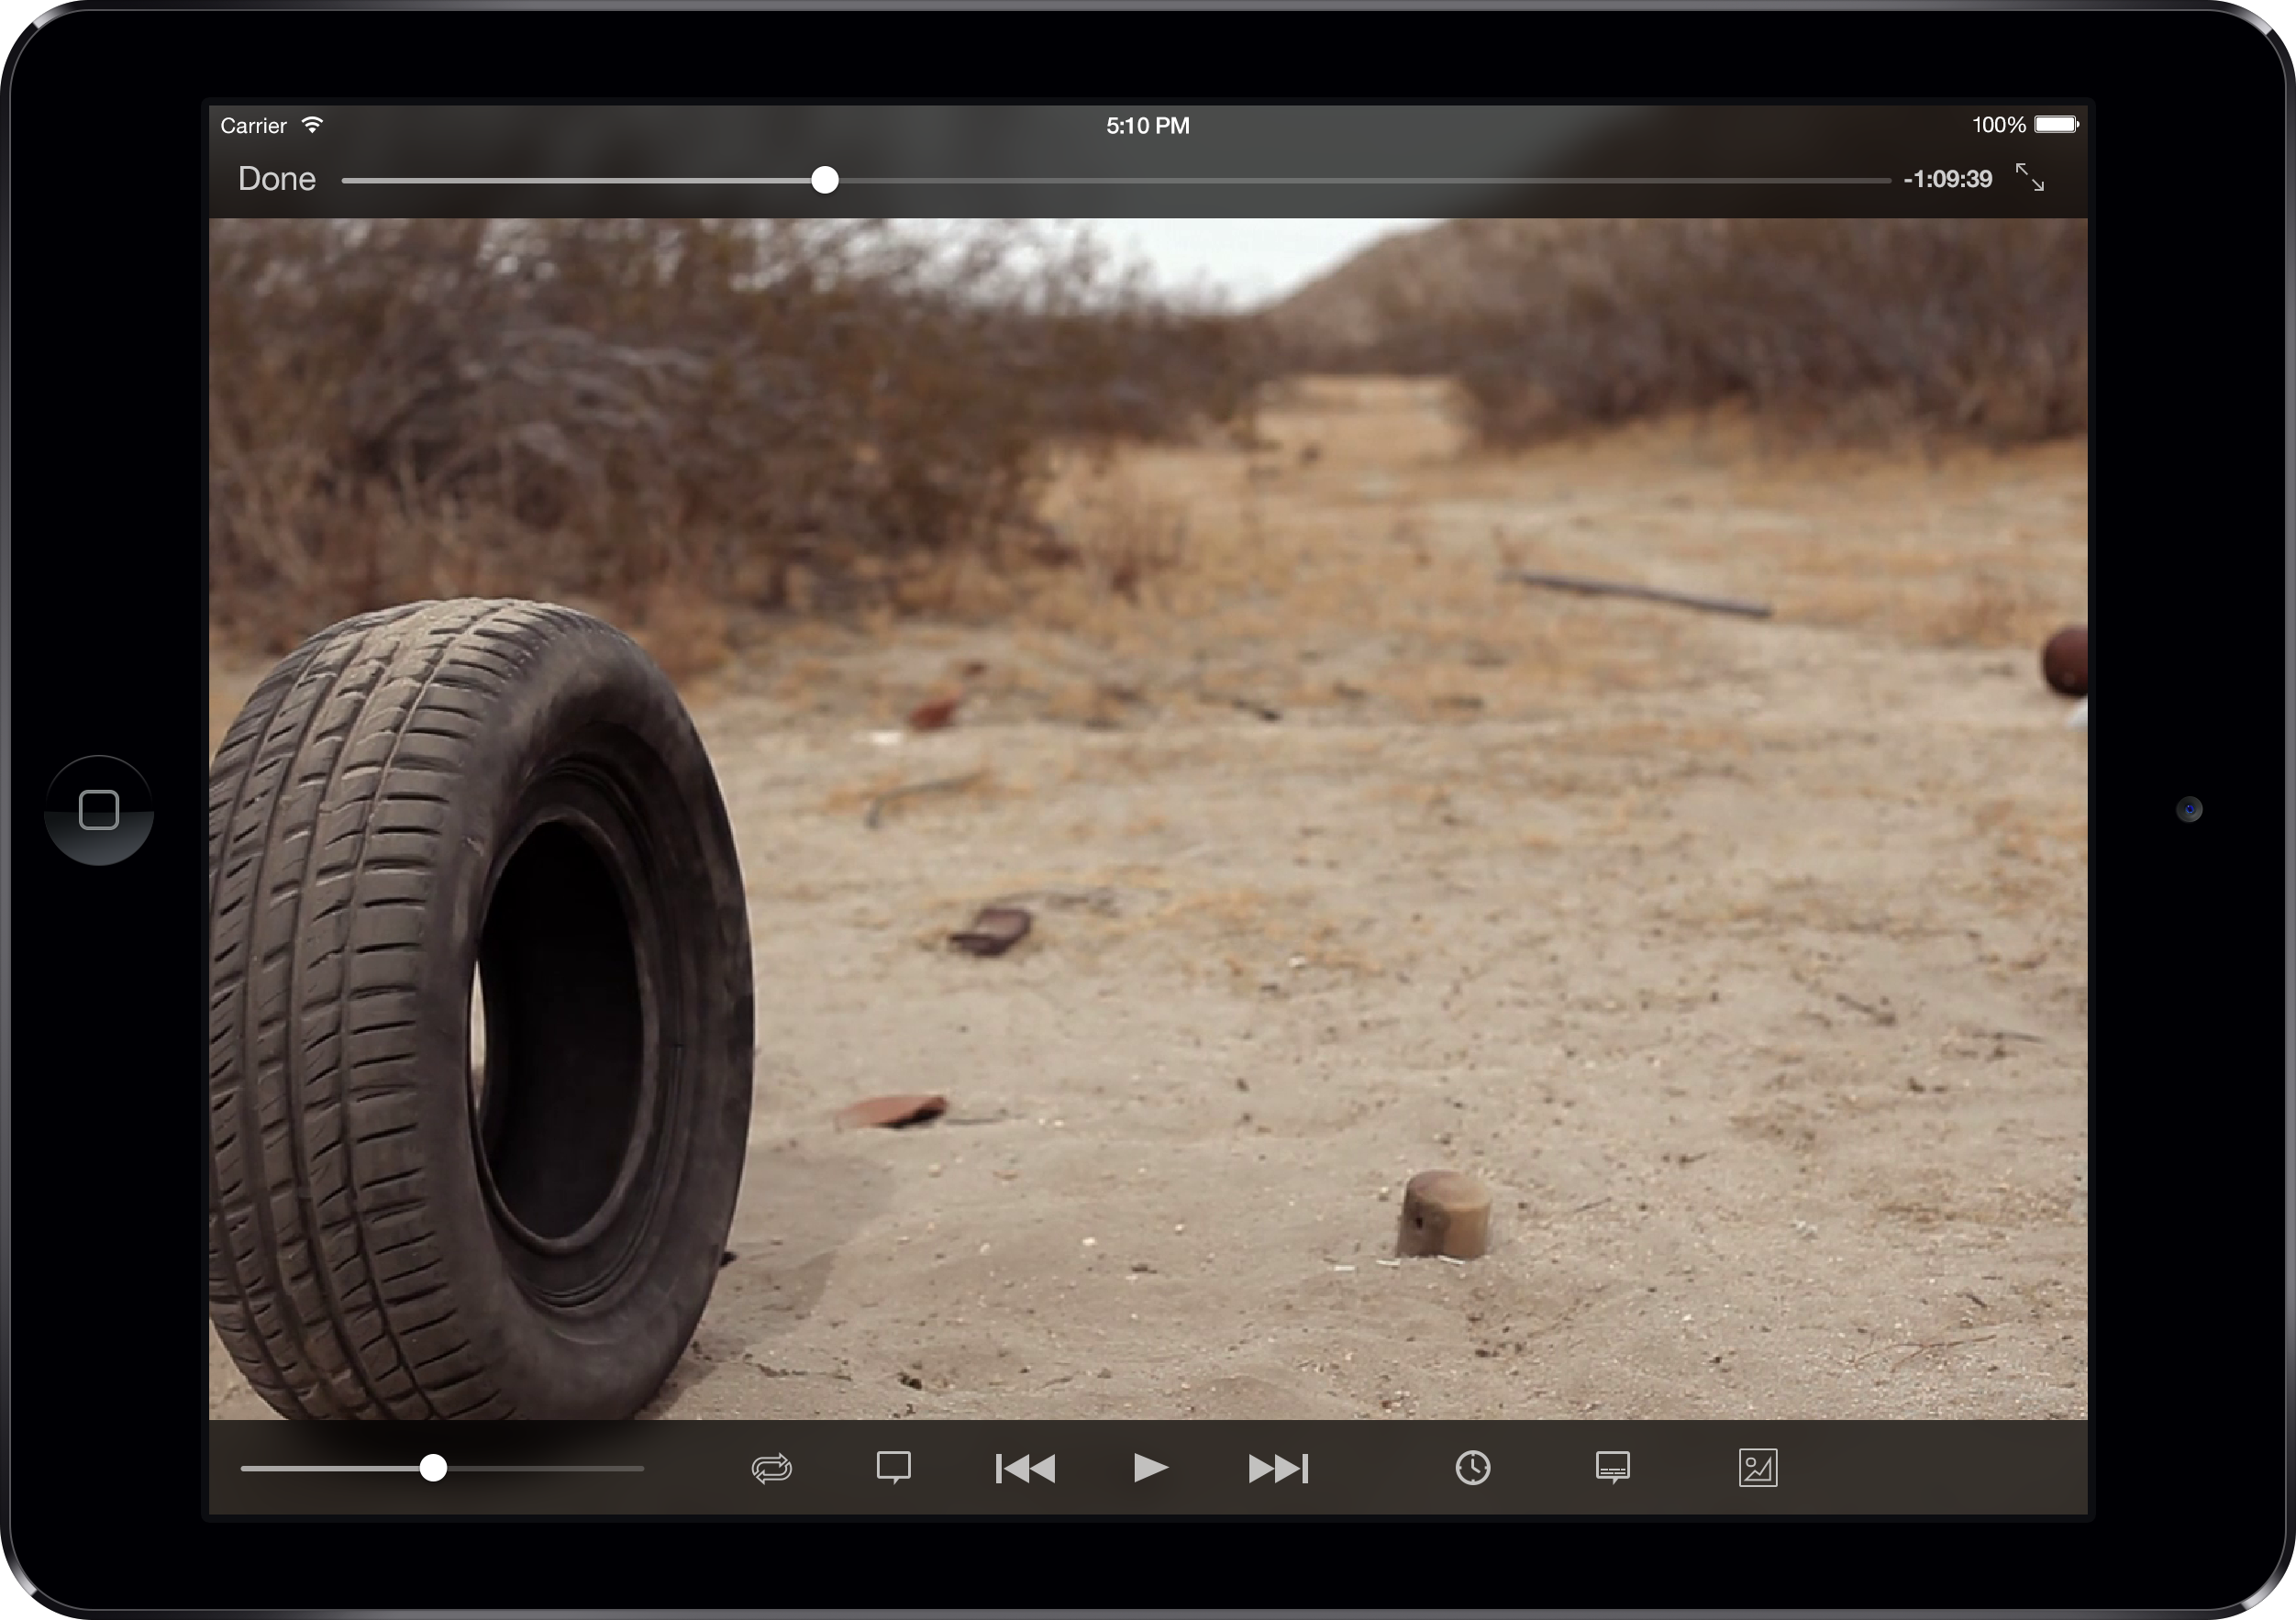 ipad air black landscape player 2 VLC gets iOS 7 redesign, Google Drive integration, Dropbox streaming, the ability to download files, and more